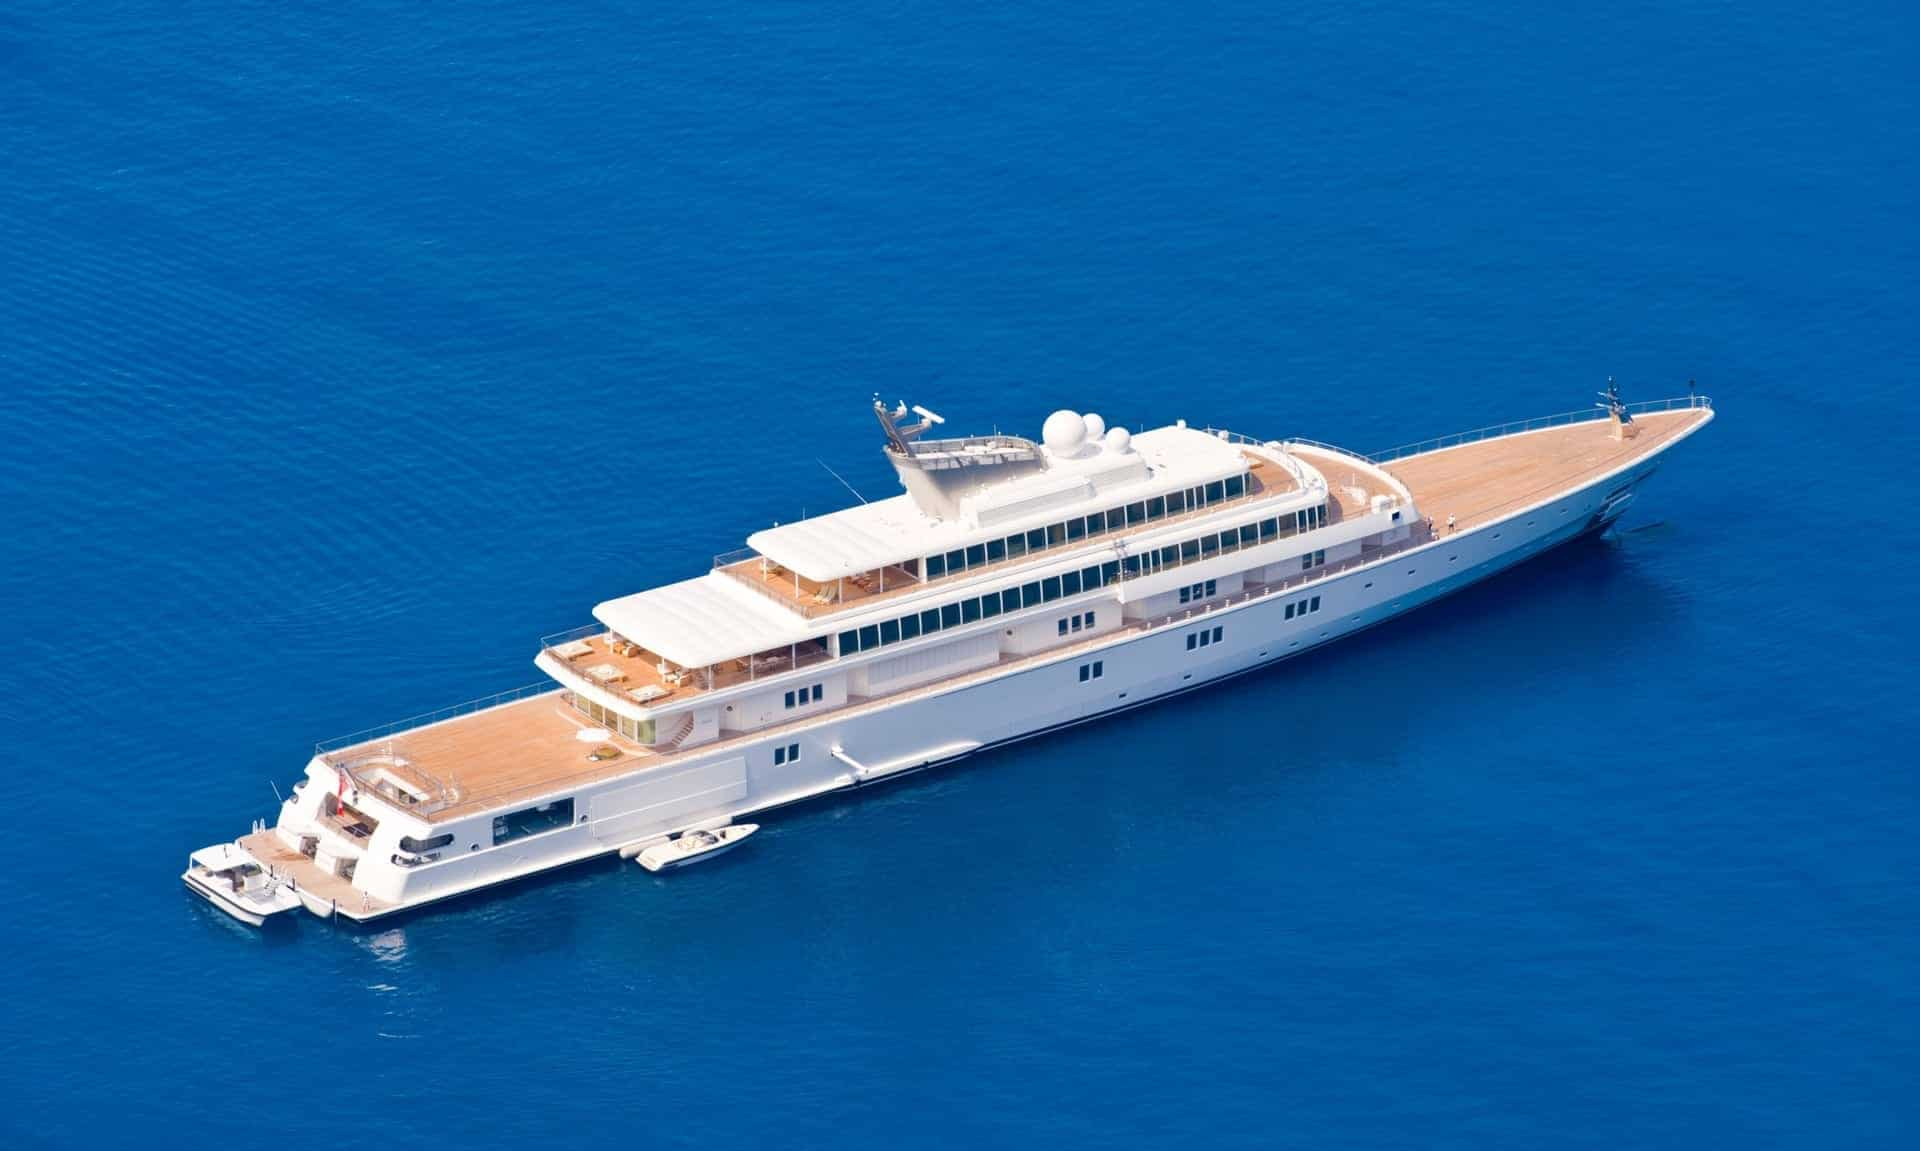 John Mayer's 'Drone Shot of My Yacht' is the right song at the right time!